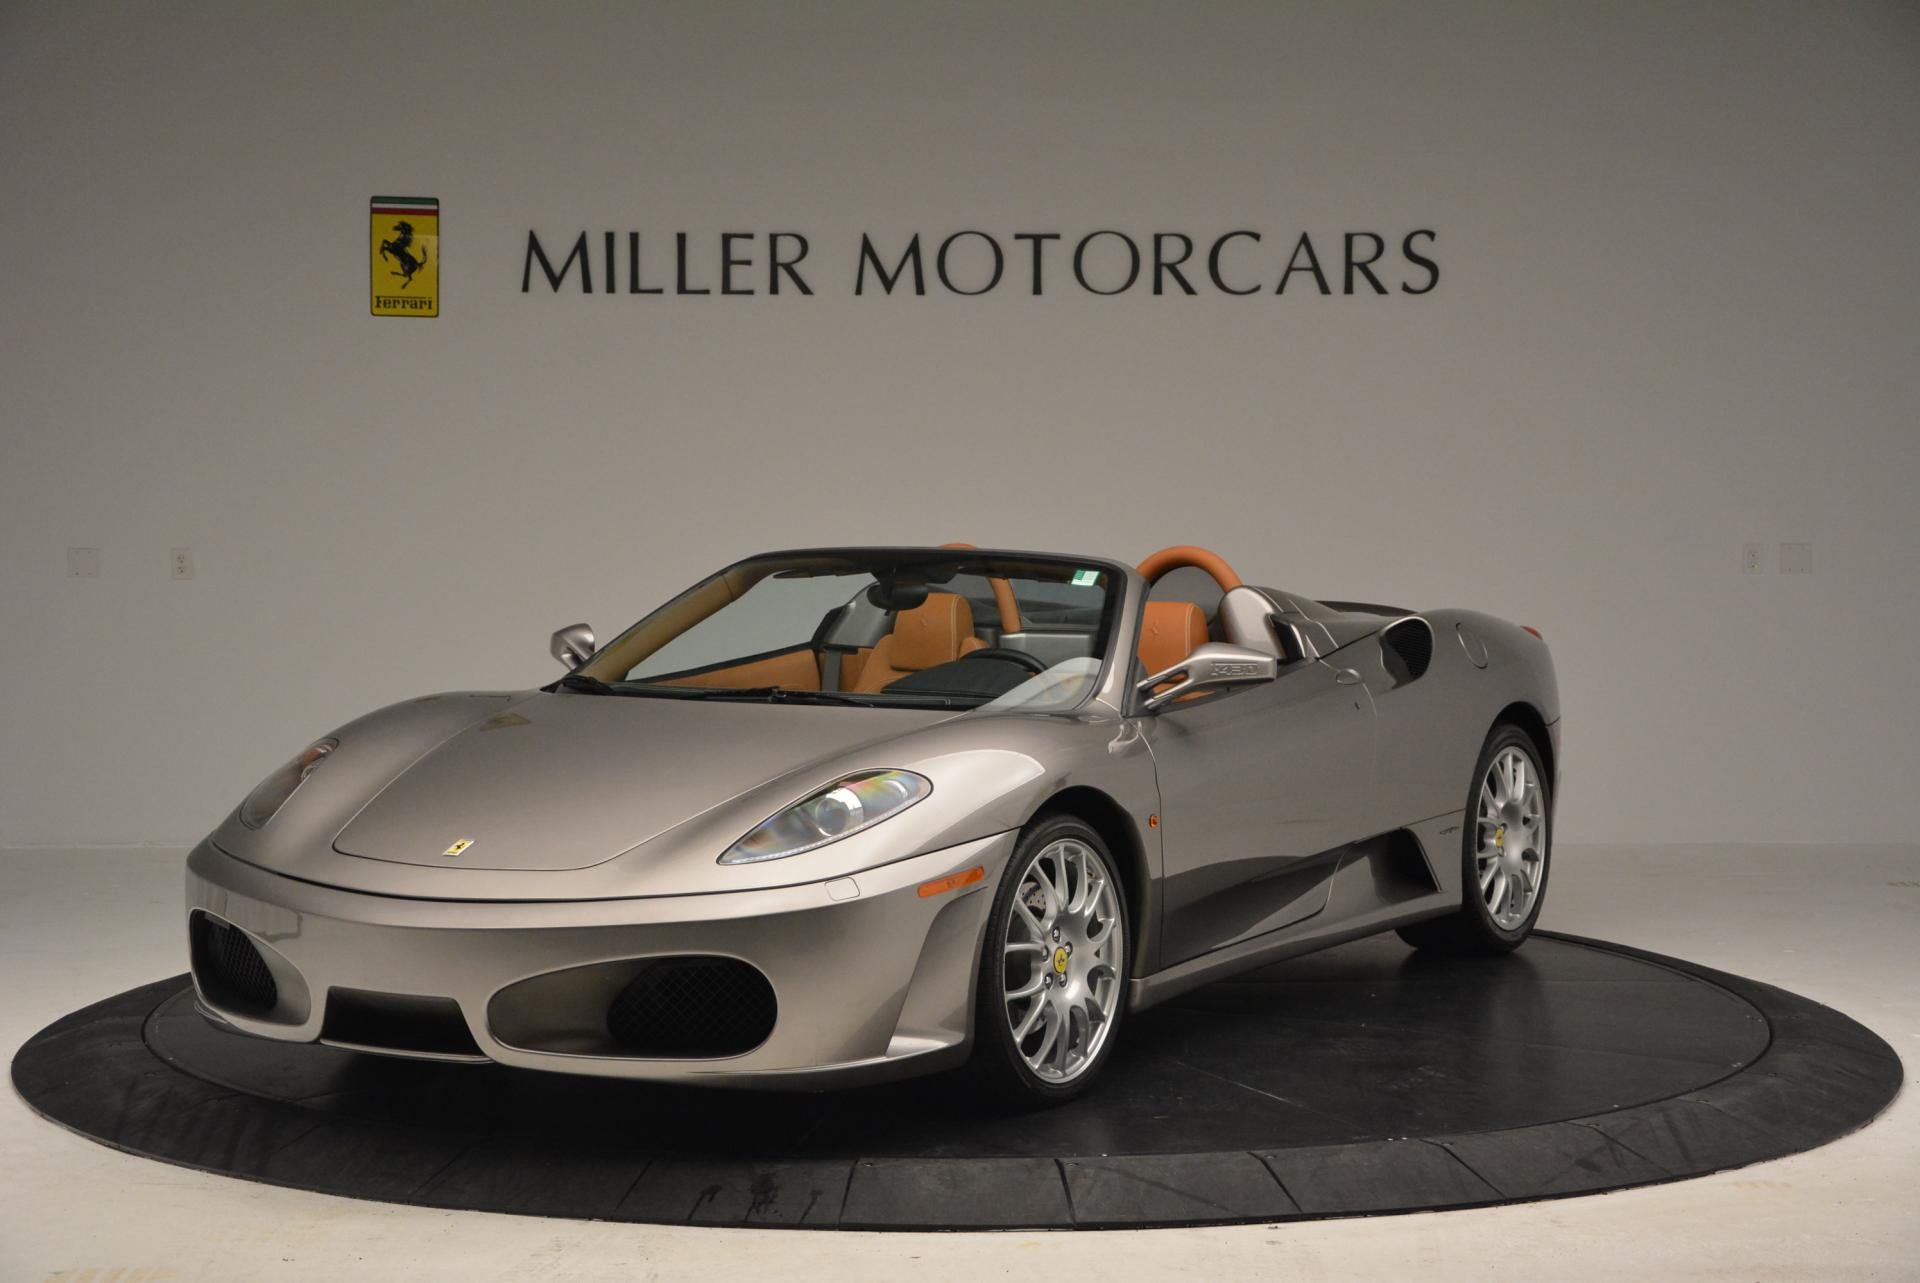 Used 2005 Ferrari F430 Spider 6-Speed Manual for sale Sold at Alfa Romeo of Westport in Westport CT 06880 1